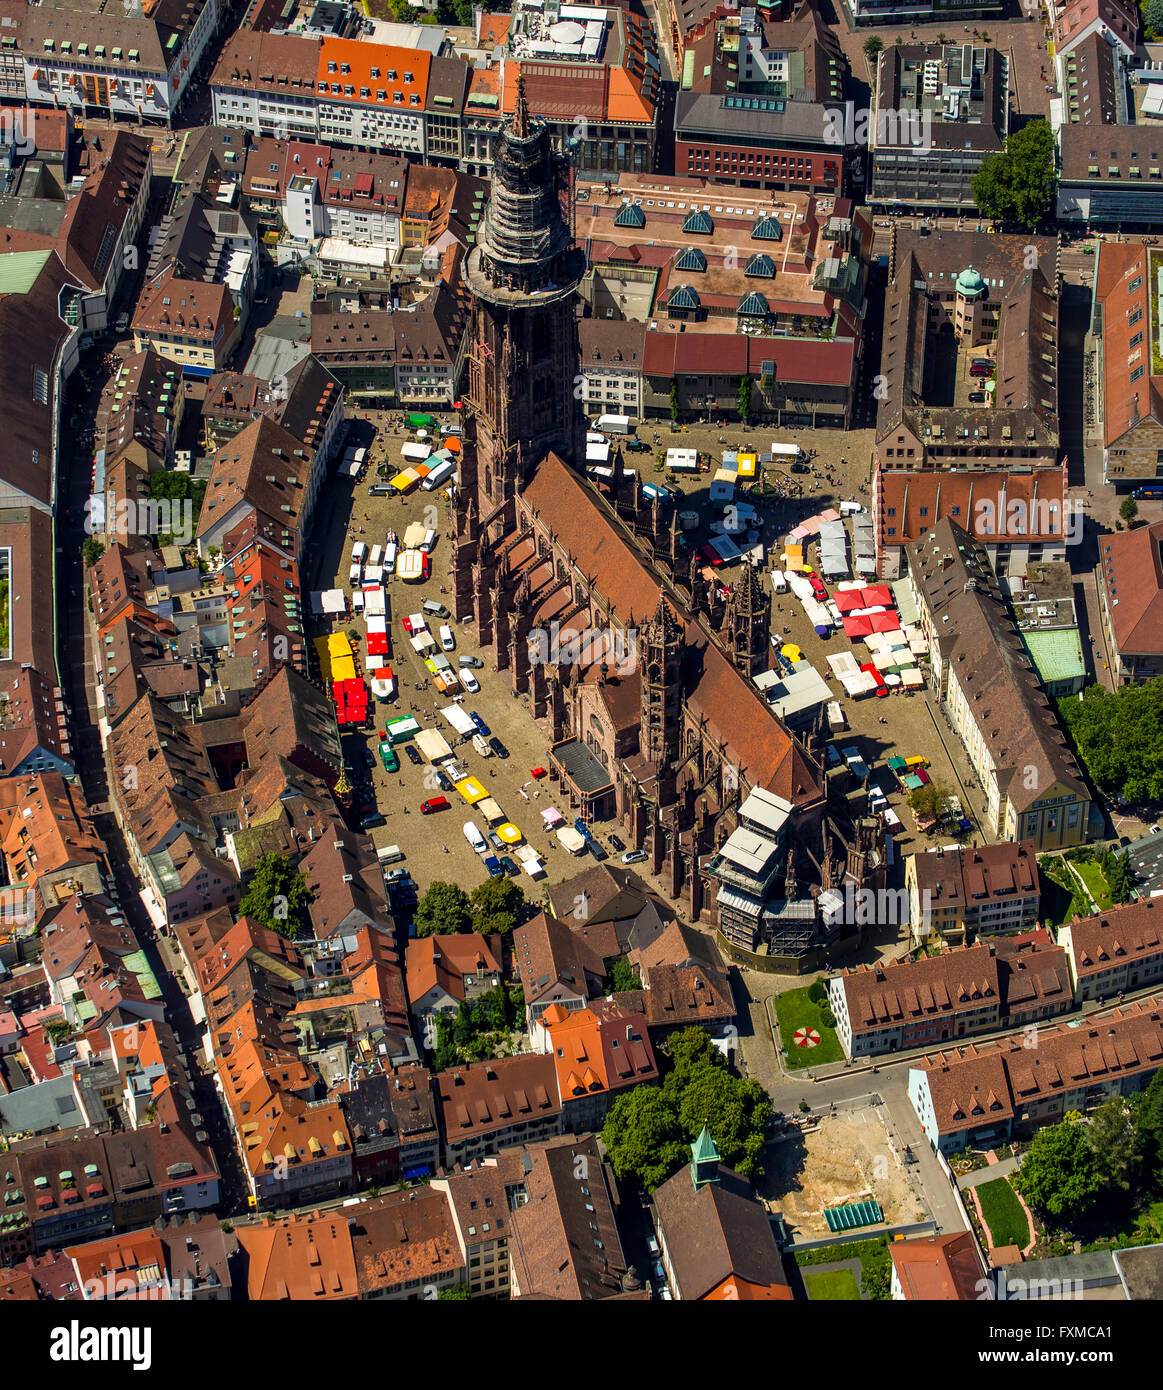 aerial view freiburg cathedral with market square freiburg stock photo 102481625 alamy. Black Bedroom Furniture Sets. Home Design Ideas